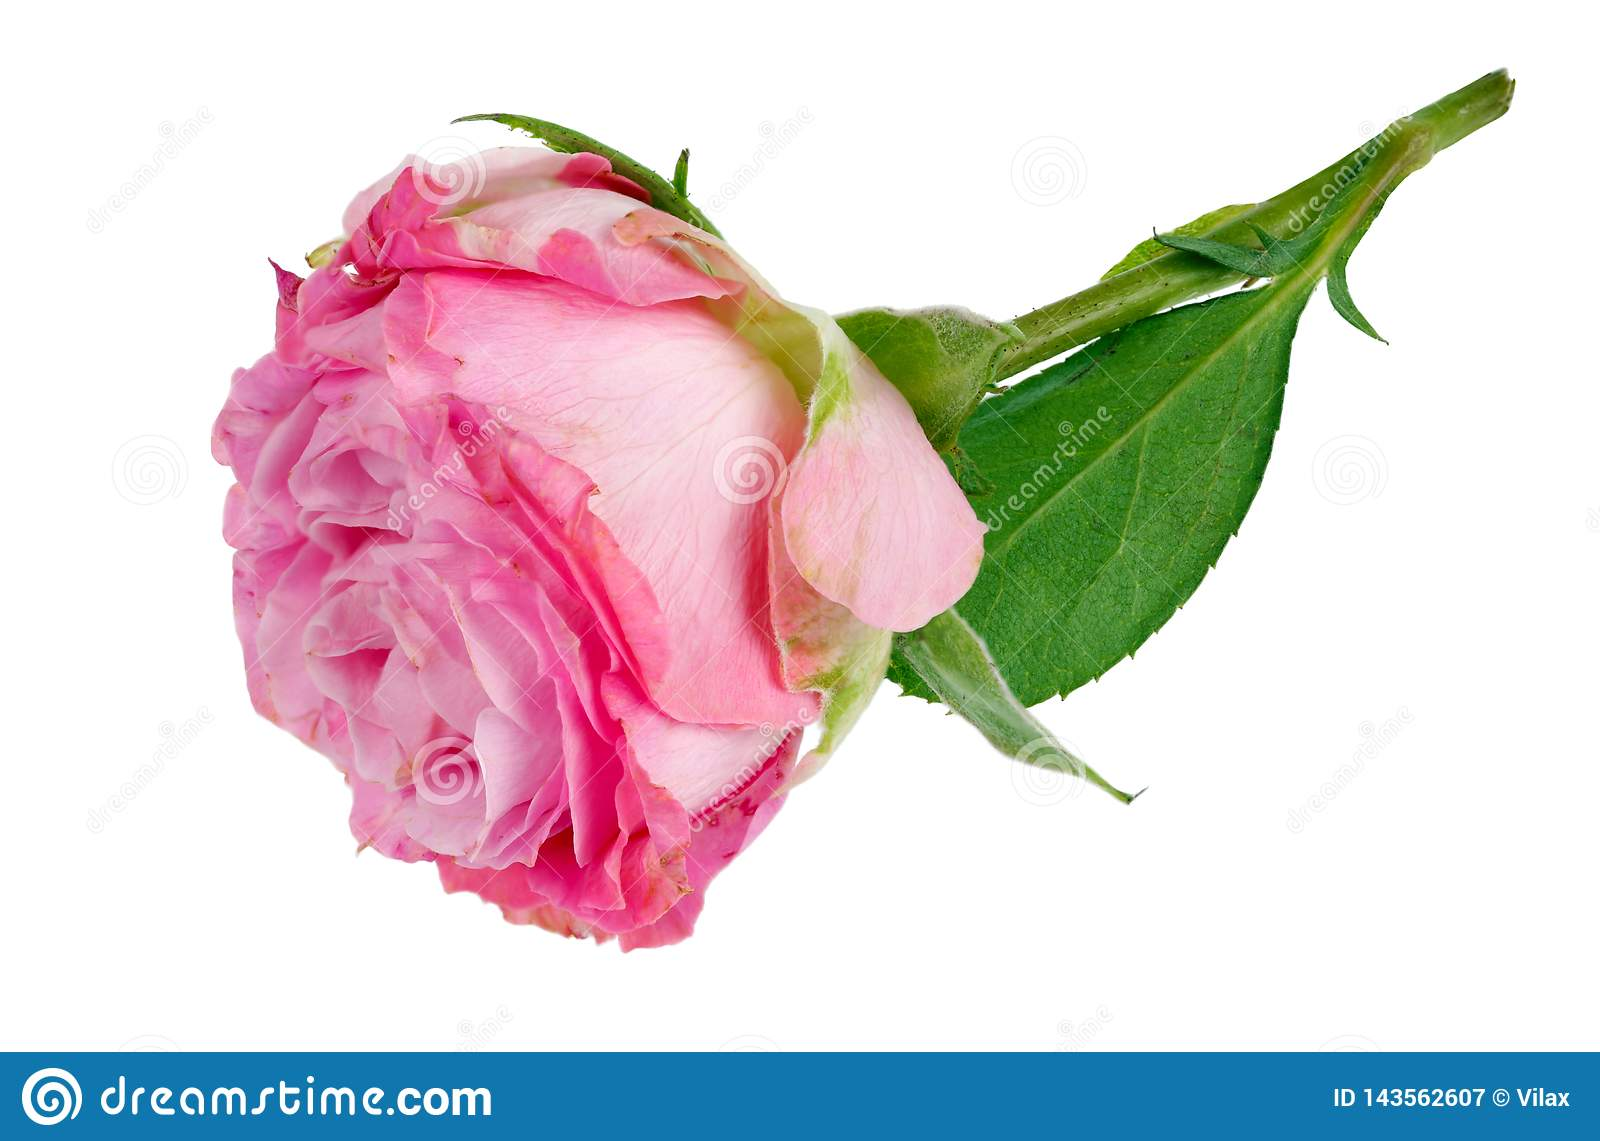 Very small perfect lonely pink rose flower lie on table isolated macro